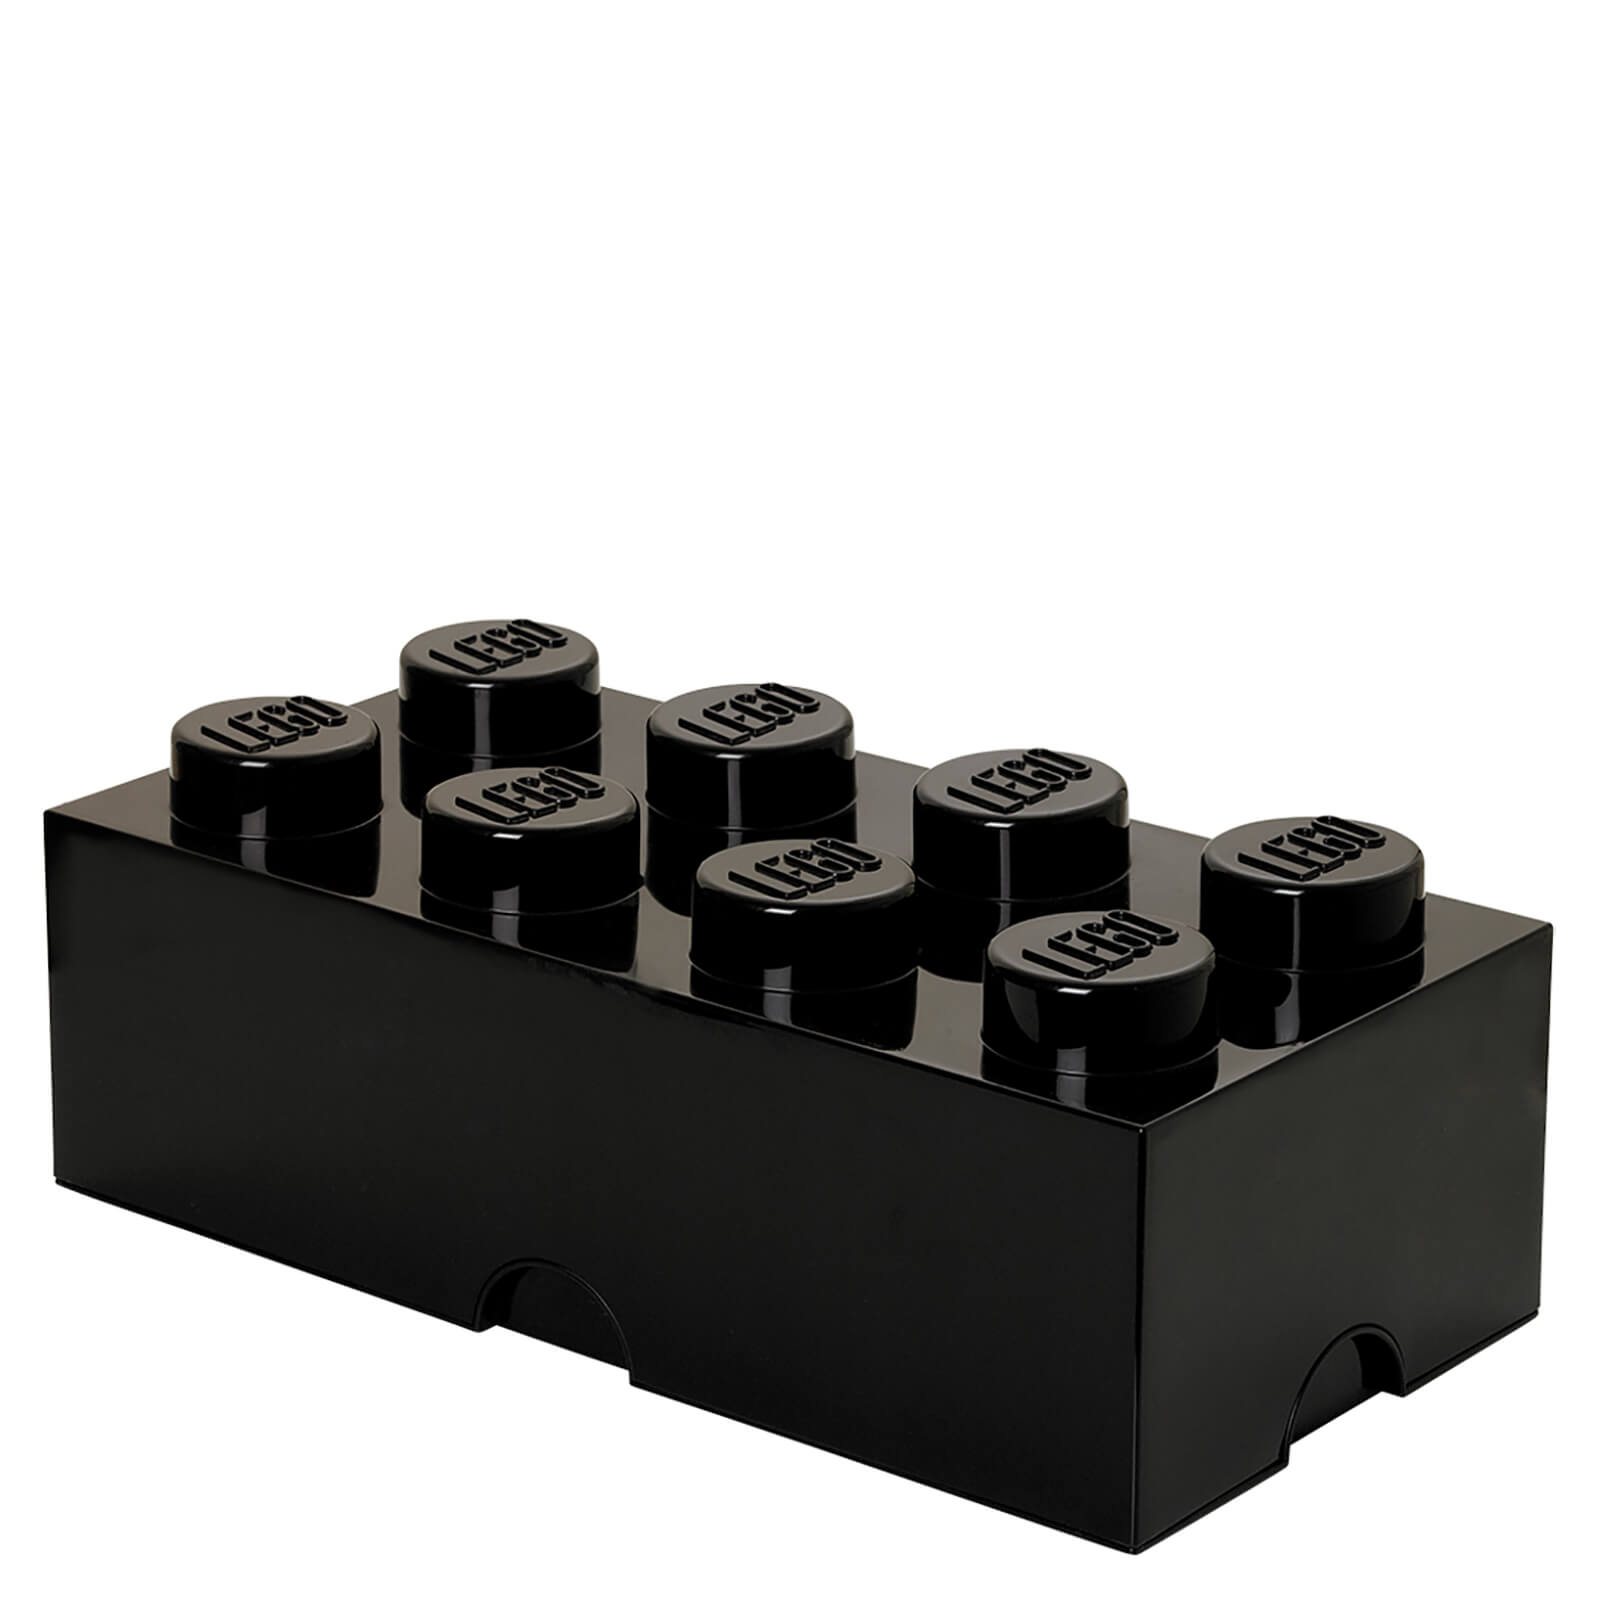 LEGO Batman Storage Brick 8 - Black